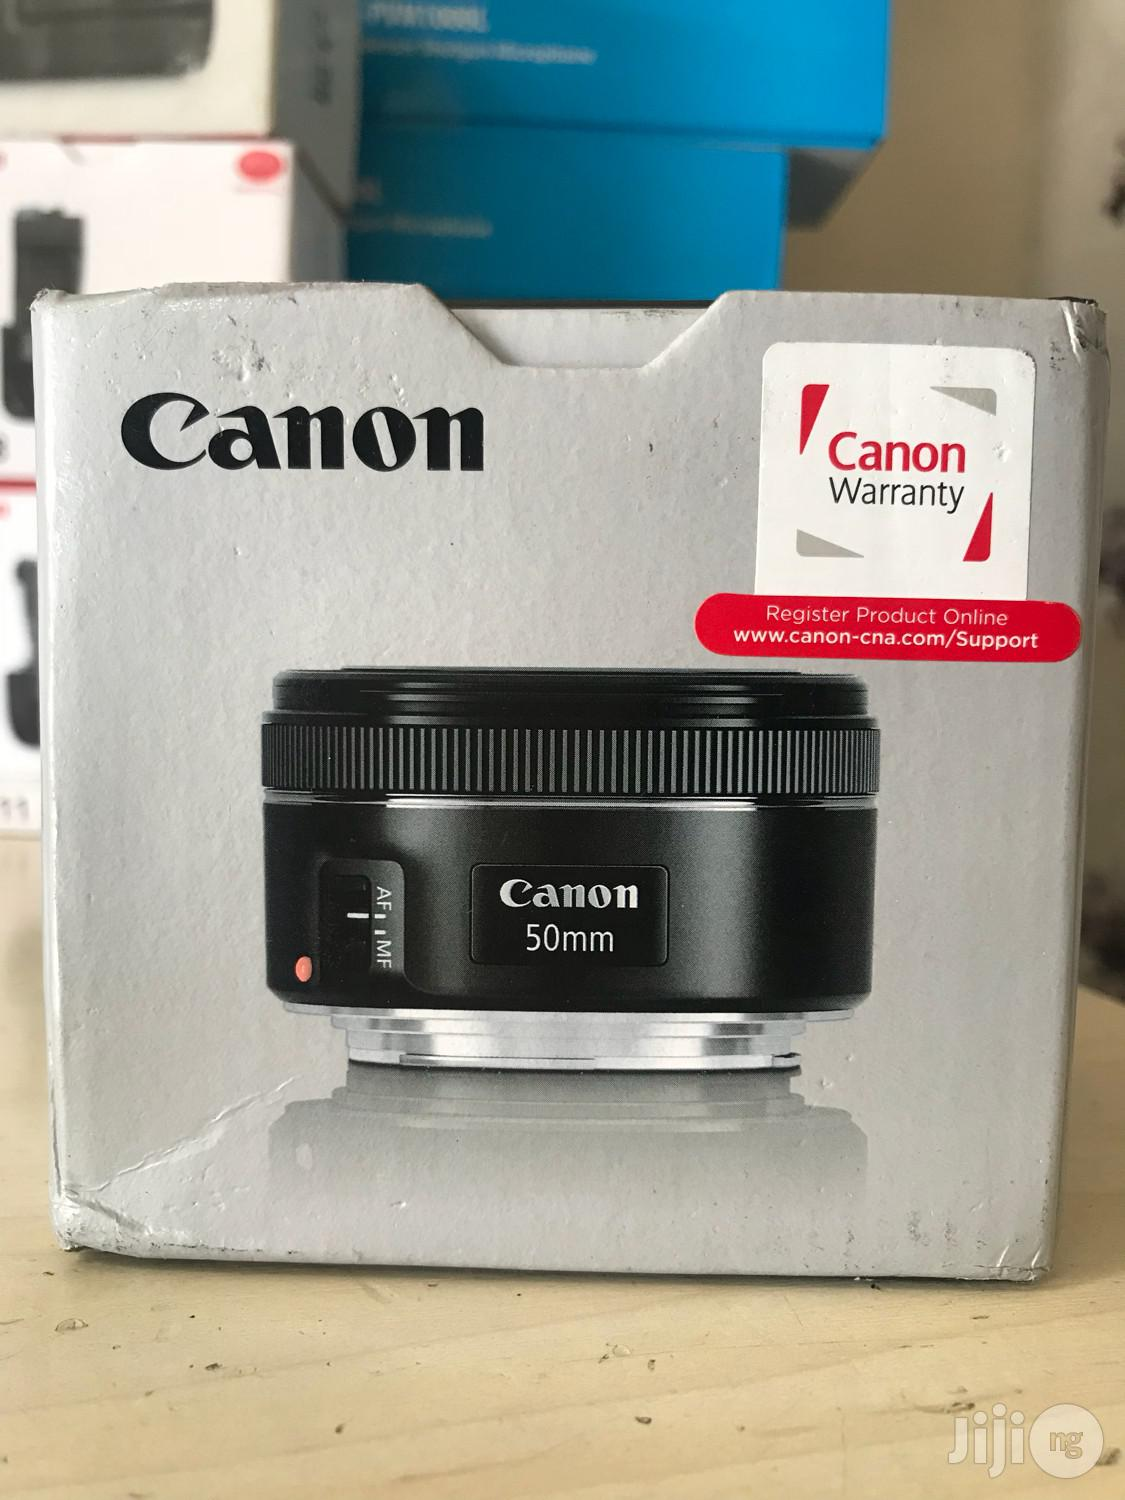 Canon EF 50mm F/1.8 STM Lens   Accessories & Supplies for Electronics for sale in Port-Harcourt, Rivers State, Nigeria